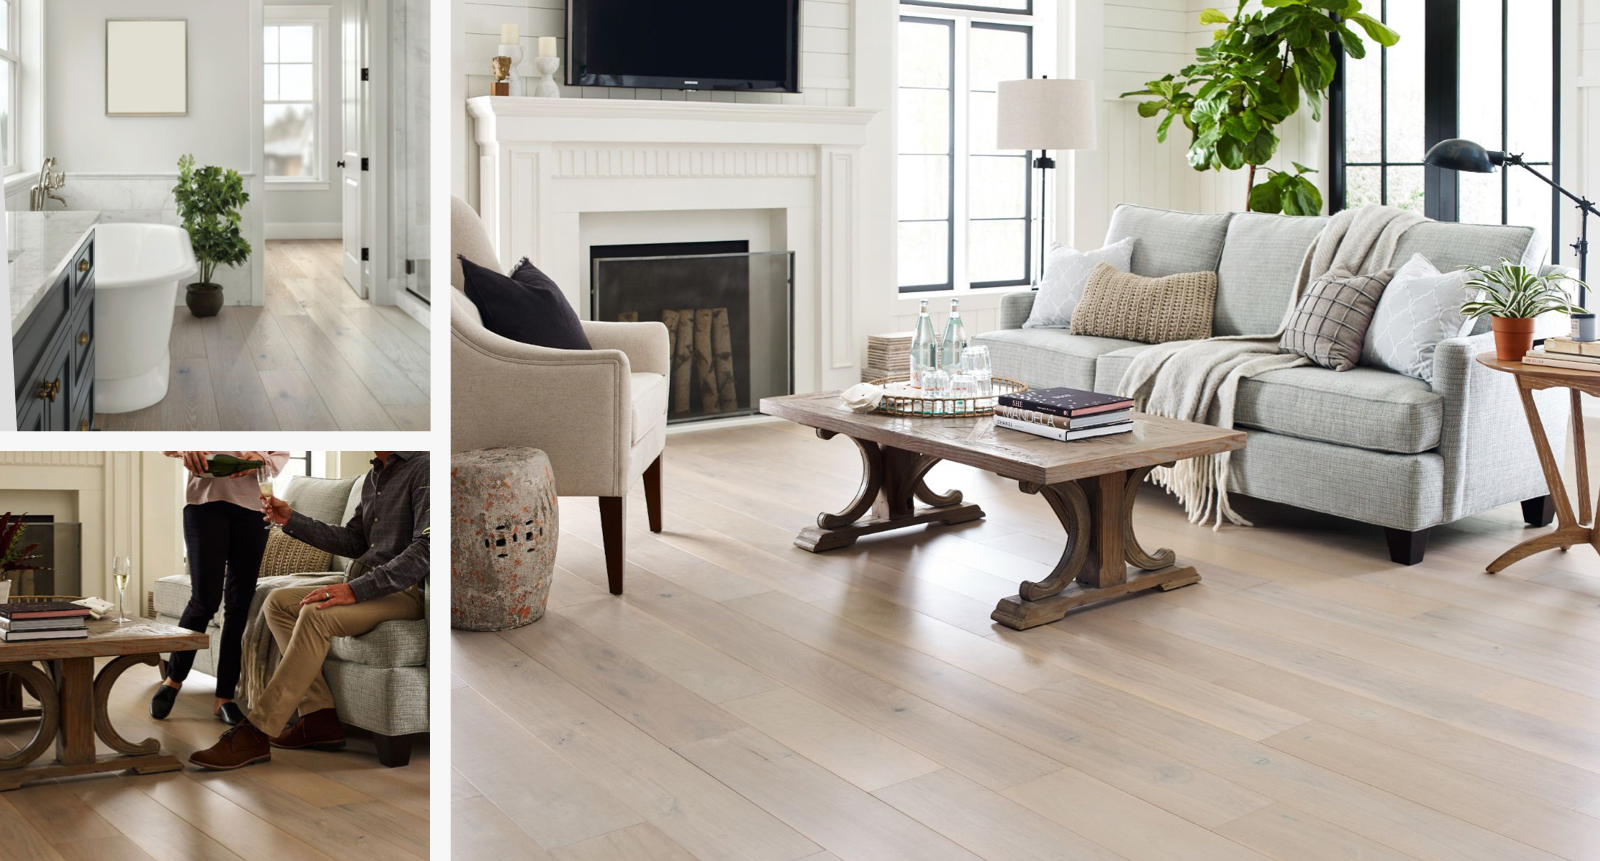 Floorte waterproof hardwood flooring for your home | Metro Flooring & Design